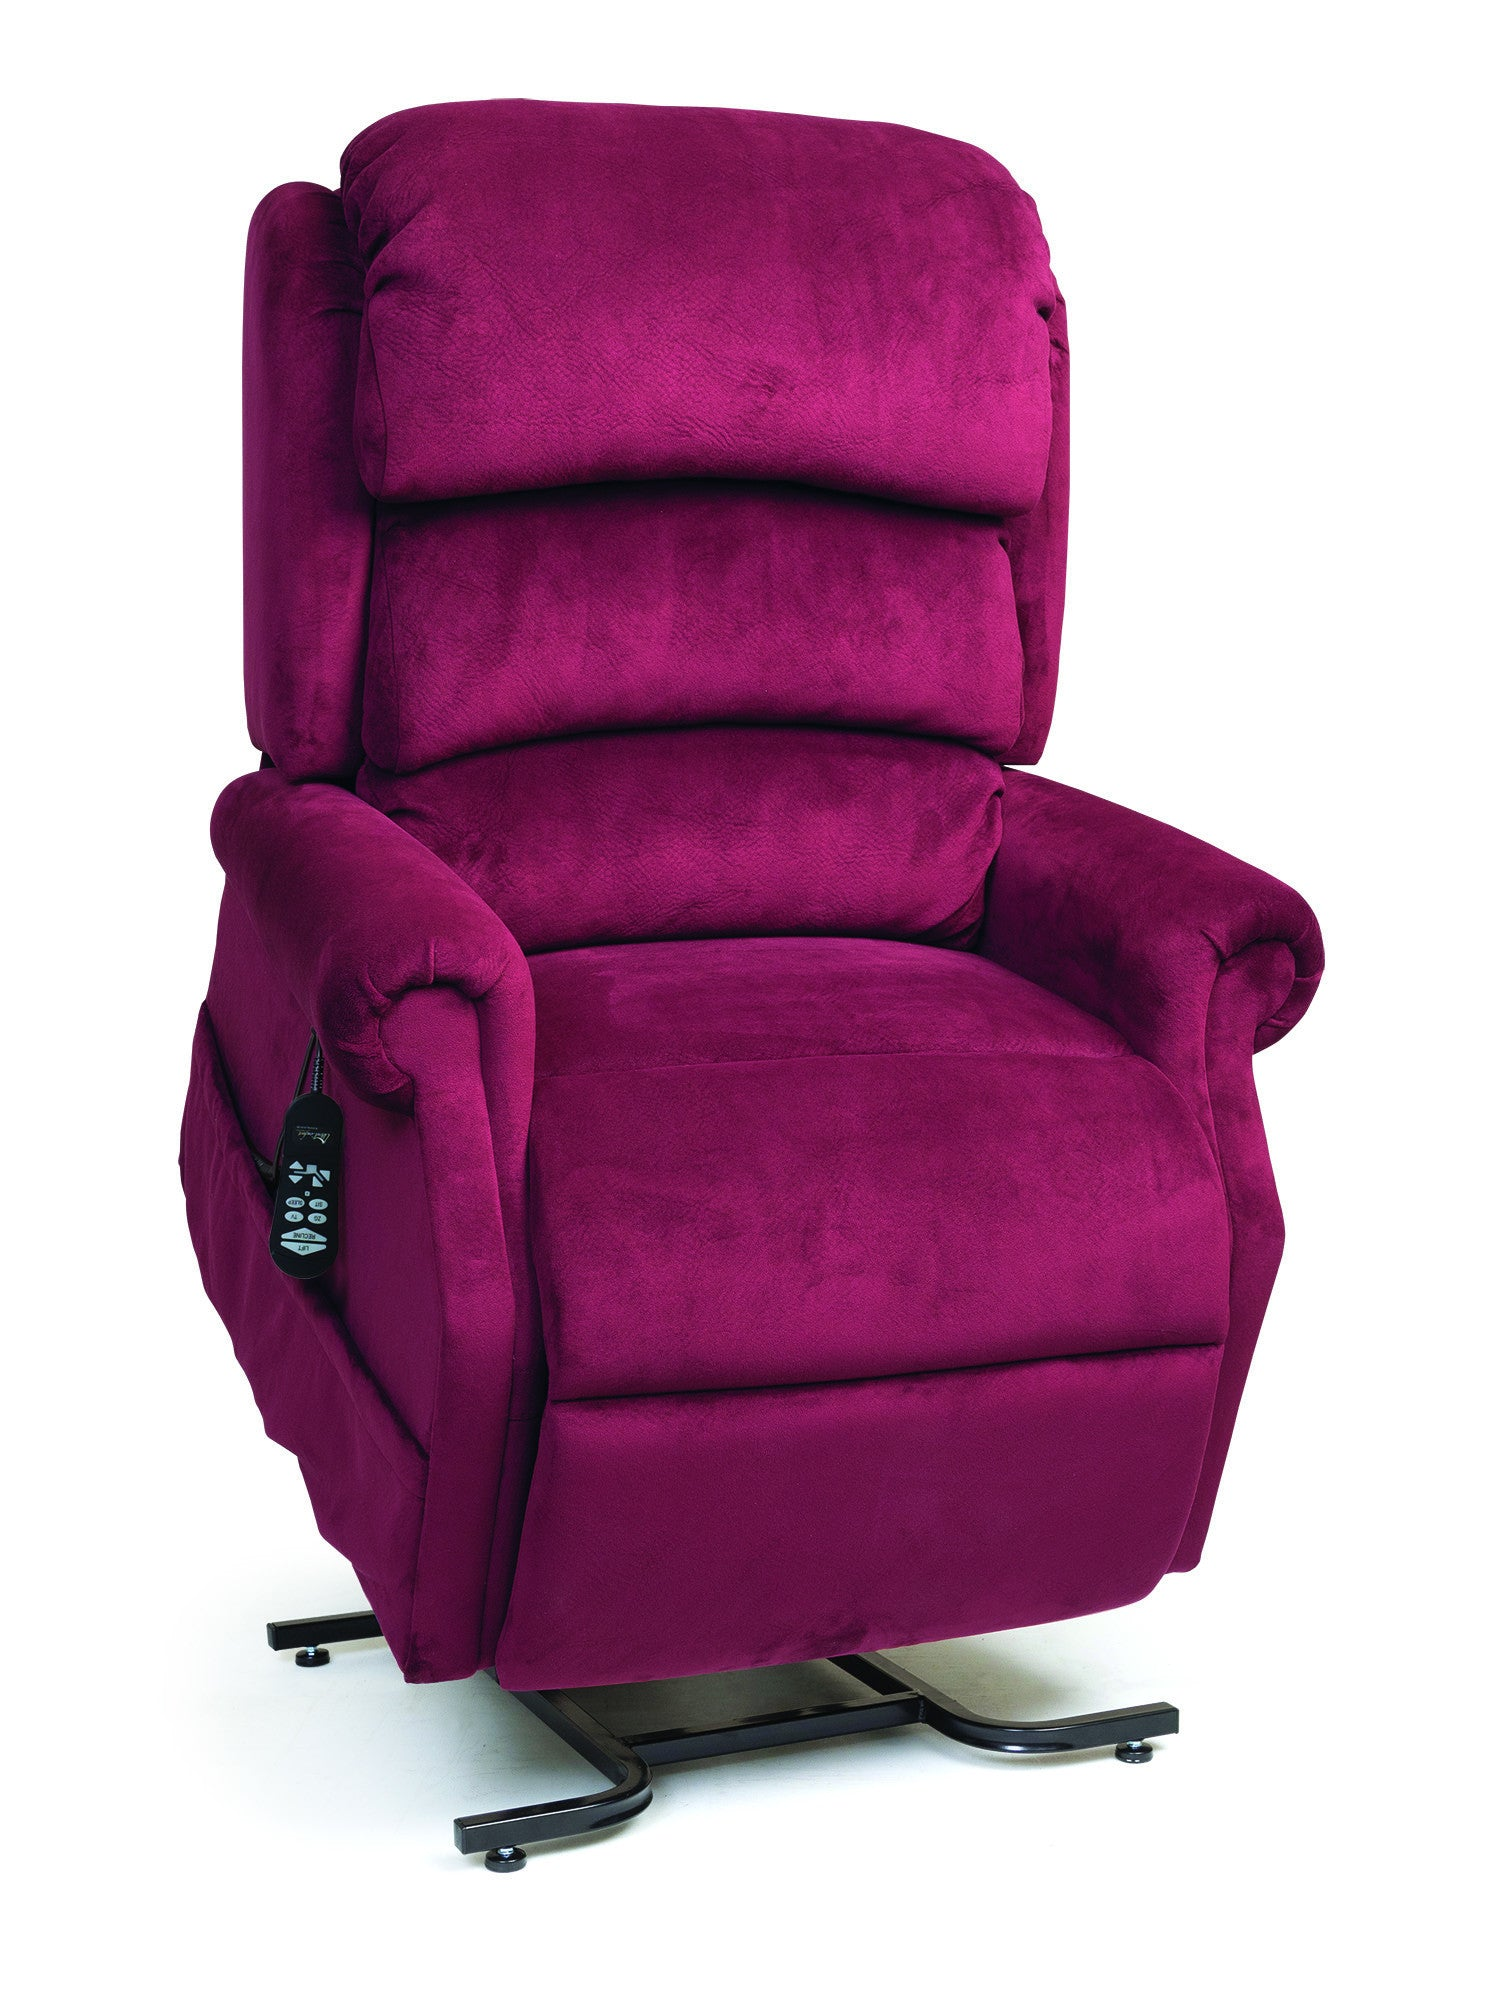 Best Recliners For Back Pain Recliners La